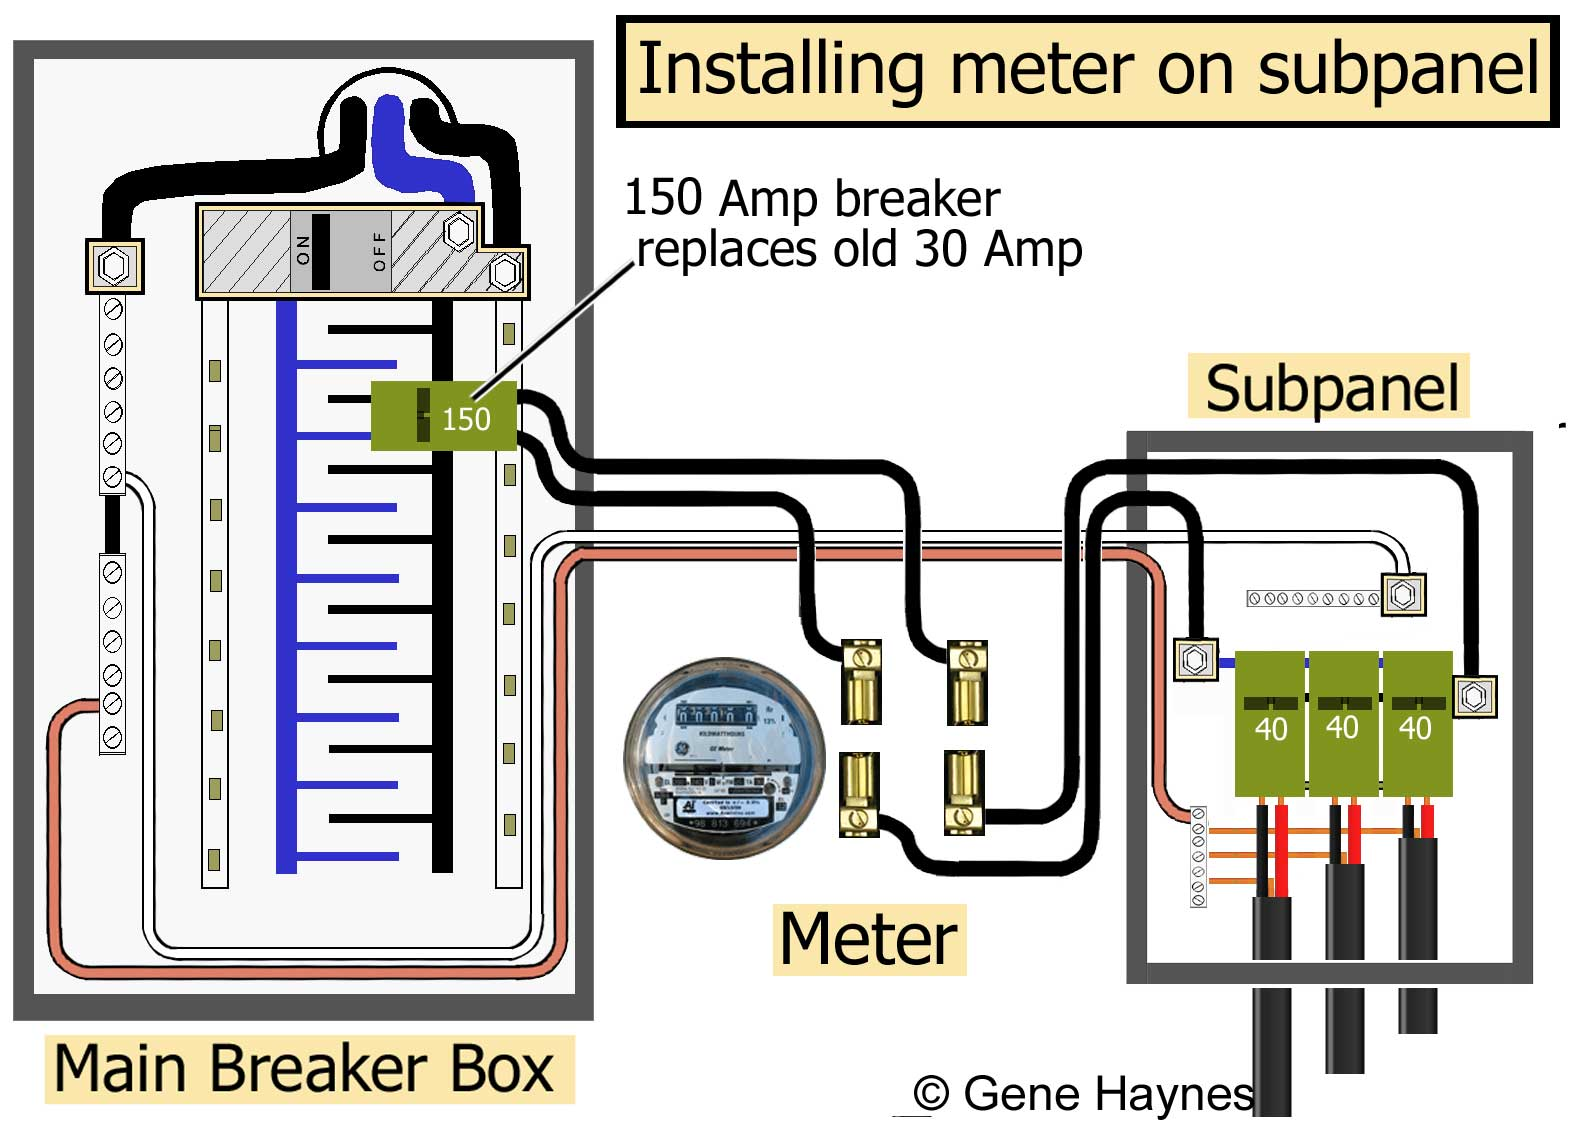 Main subpanel Tankless meter 600 how to wire tankless electric water heater 10 point meter pan wiring diagram at gsmportal.co